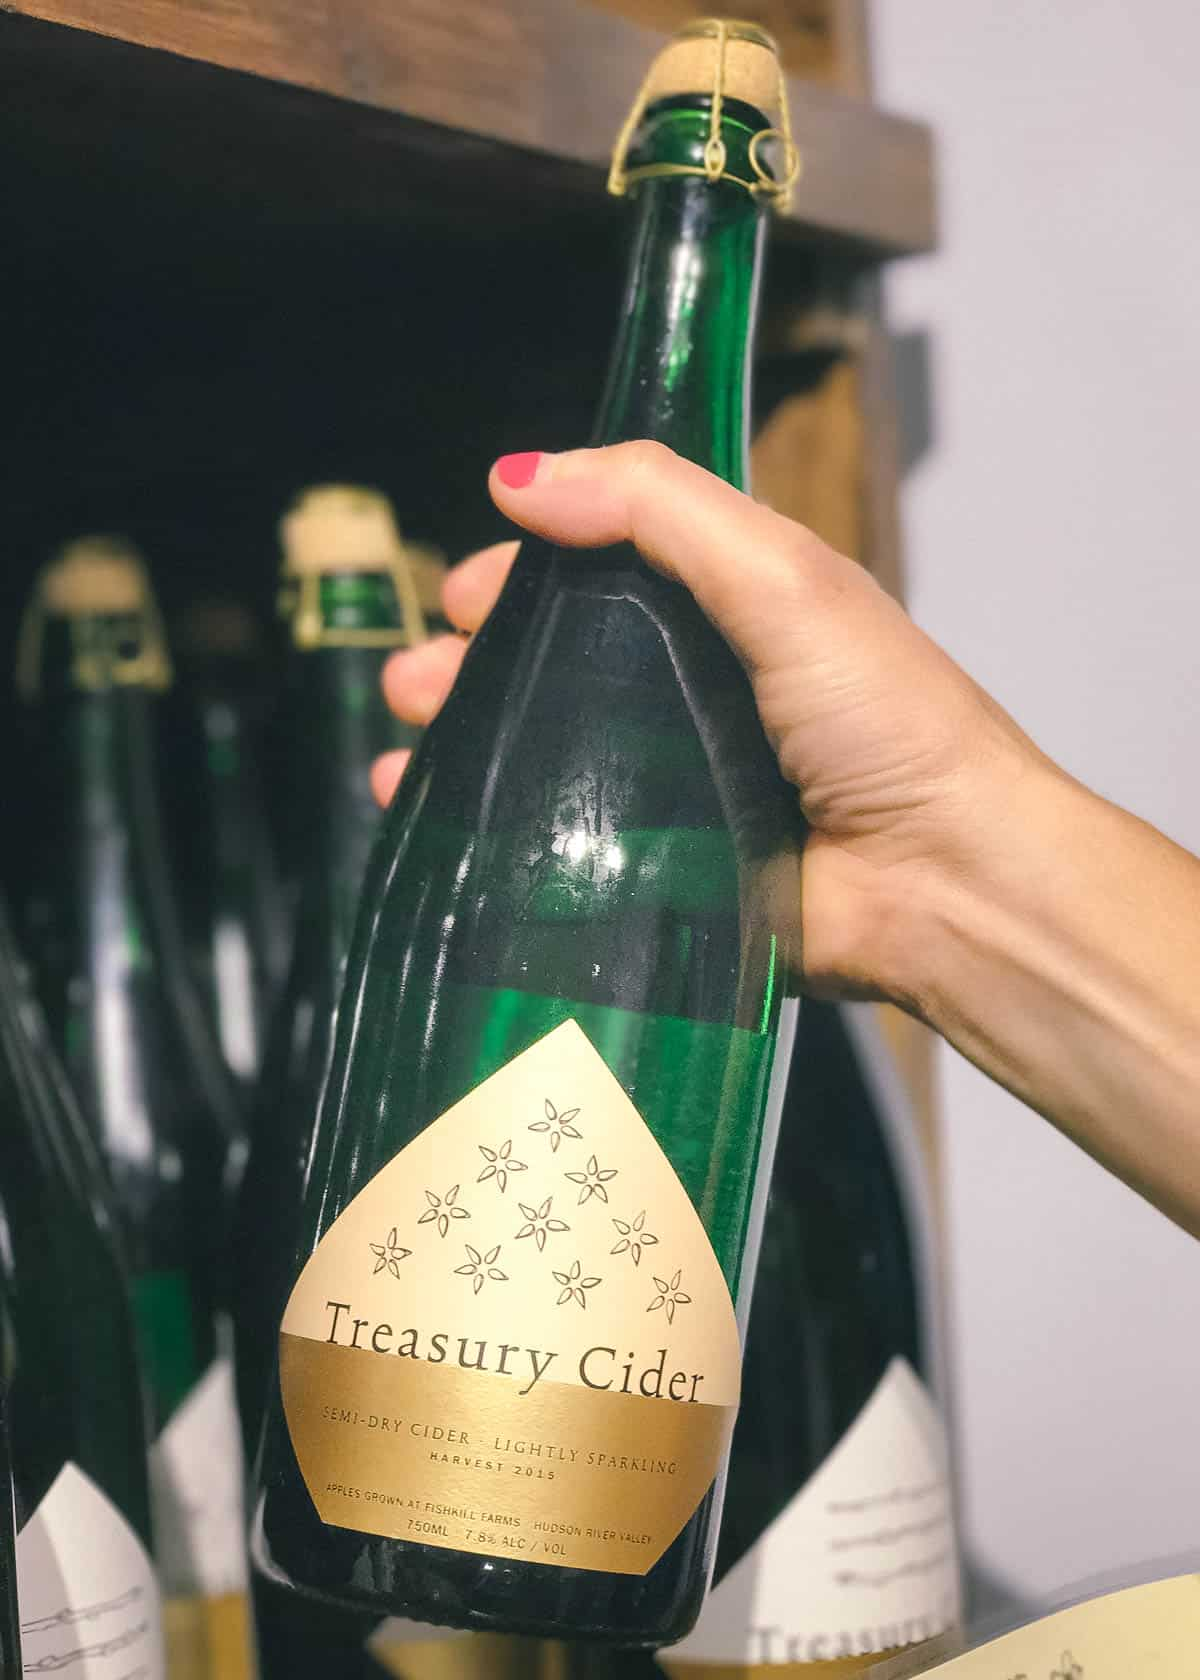 Treasury Cider, local to the Hudson Valley, is a semi-dry cider perfect for blending up with strawberries and basil for these easy cider slushies.